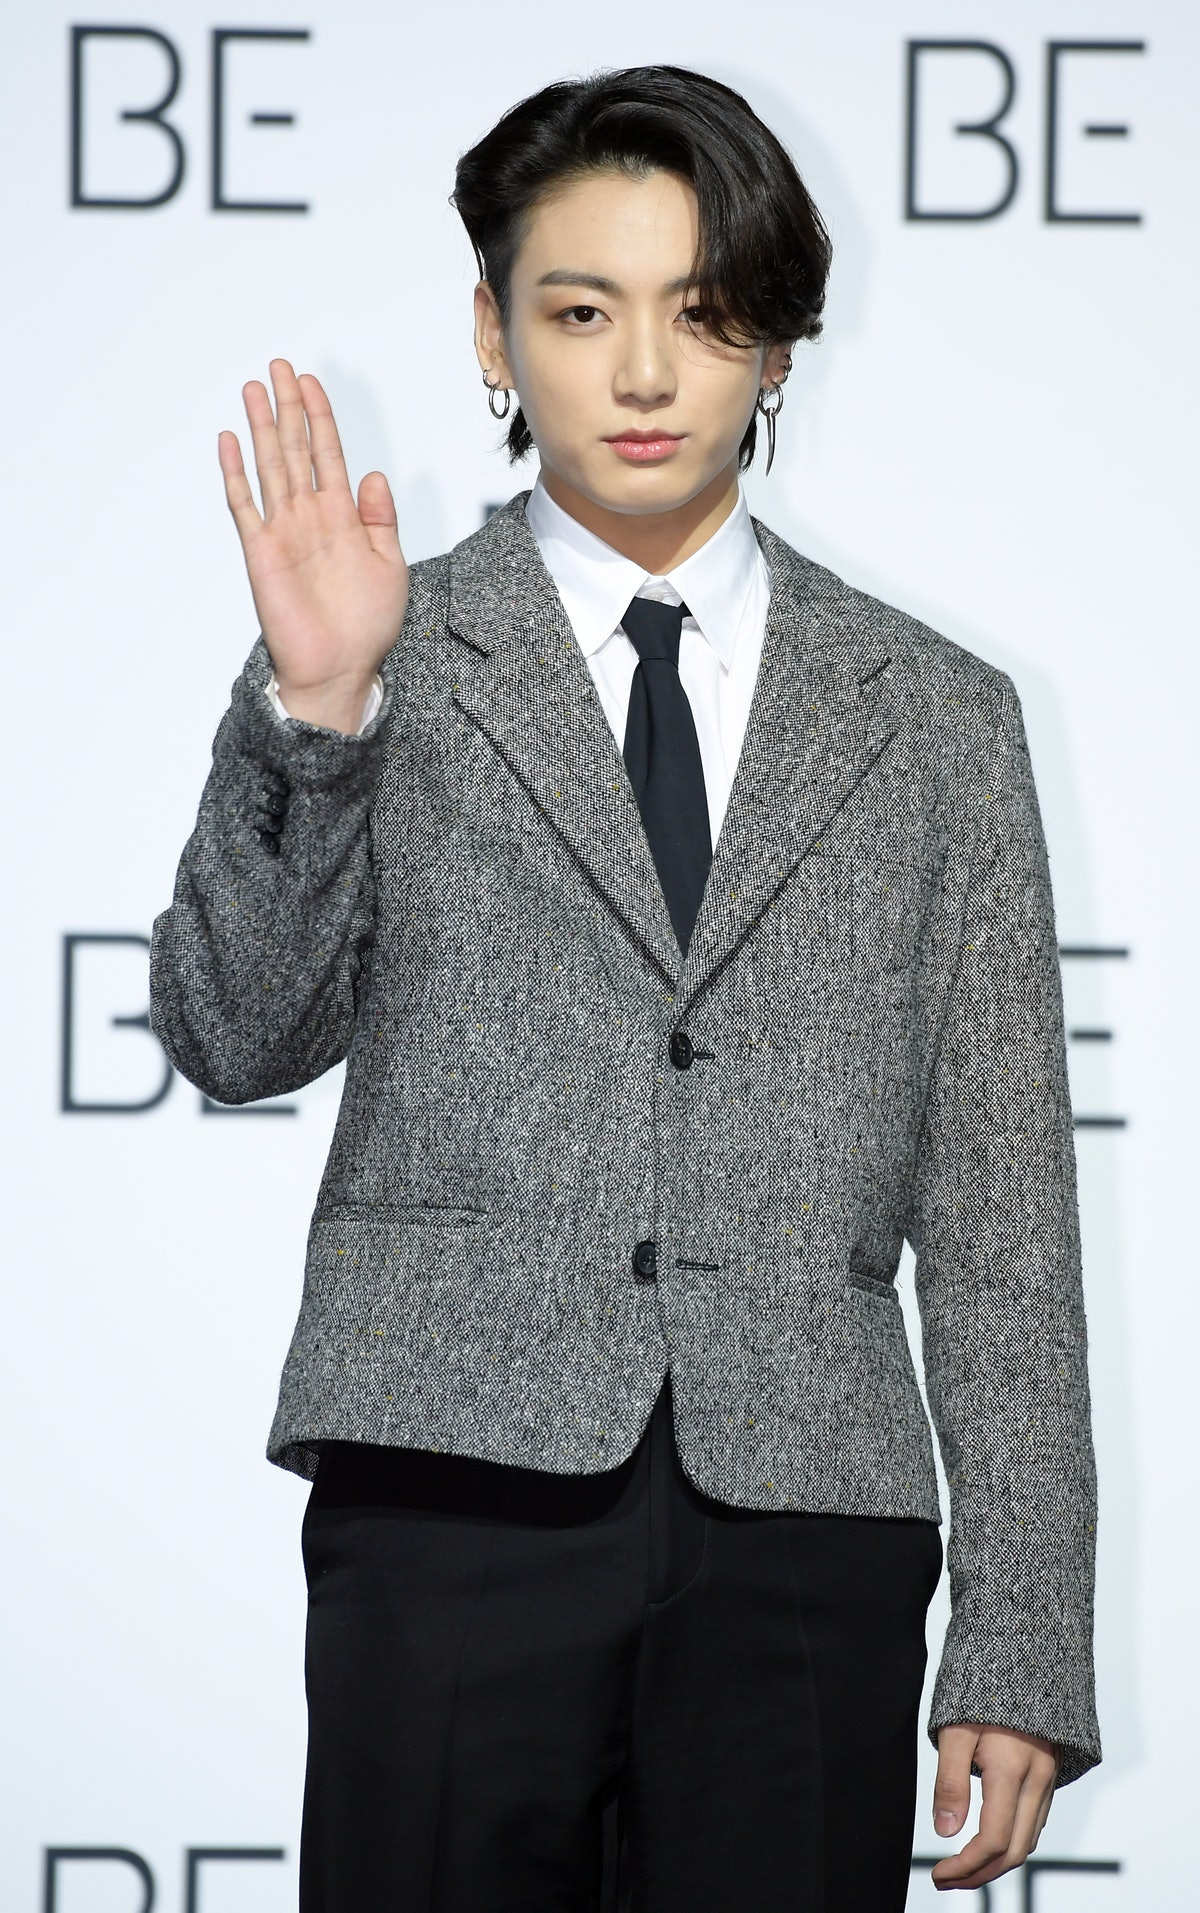 SEOUL, SOUTH KOREA - NOVEMBER 20: Jungkook of BTS during BTS's New Album 'BE (Deluxe Edition)' Release Press Conference at Dongdaemun Design Plaza on November 20, 2020 in Seoul, South Korea. (Photo by The Chosunilbo JNS/Imazins via Getty Images)